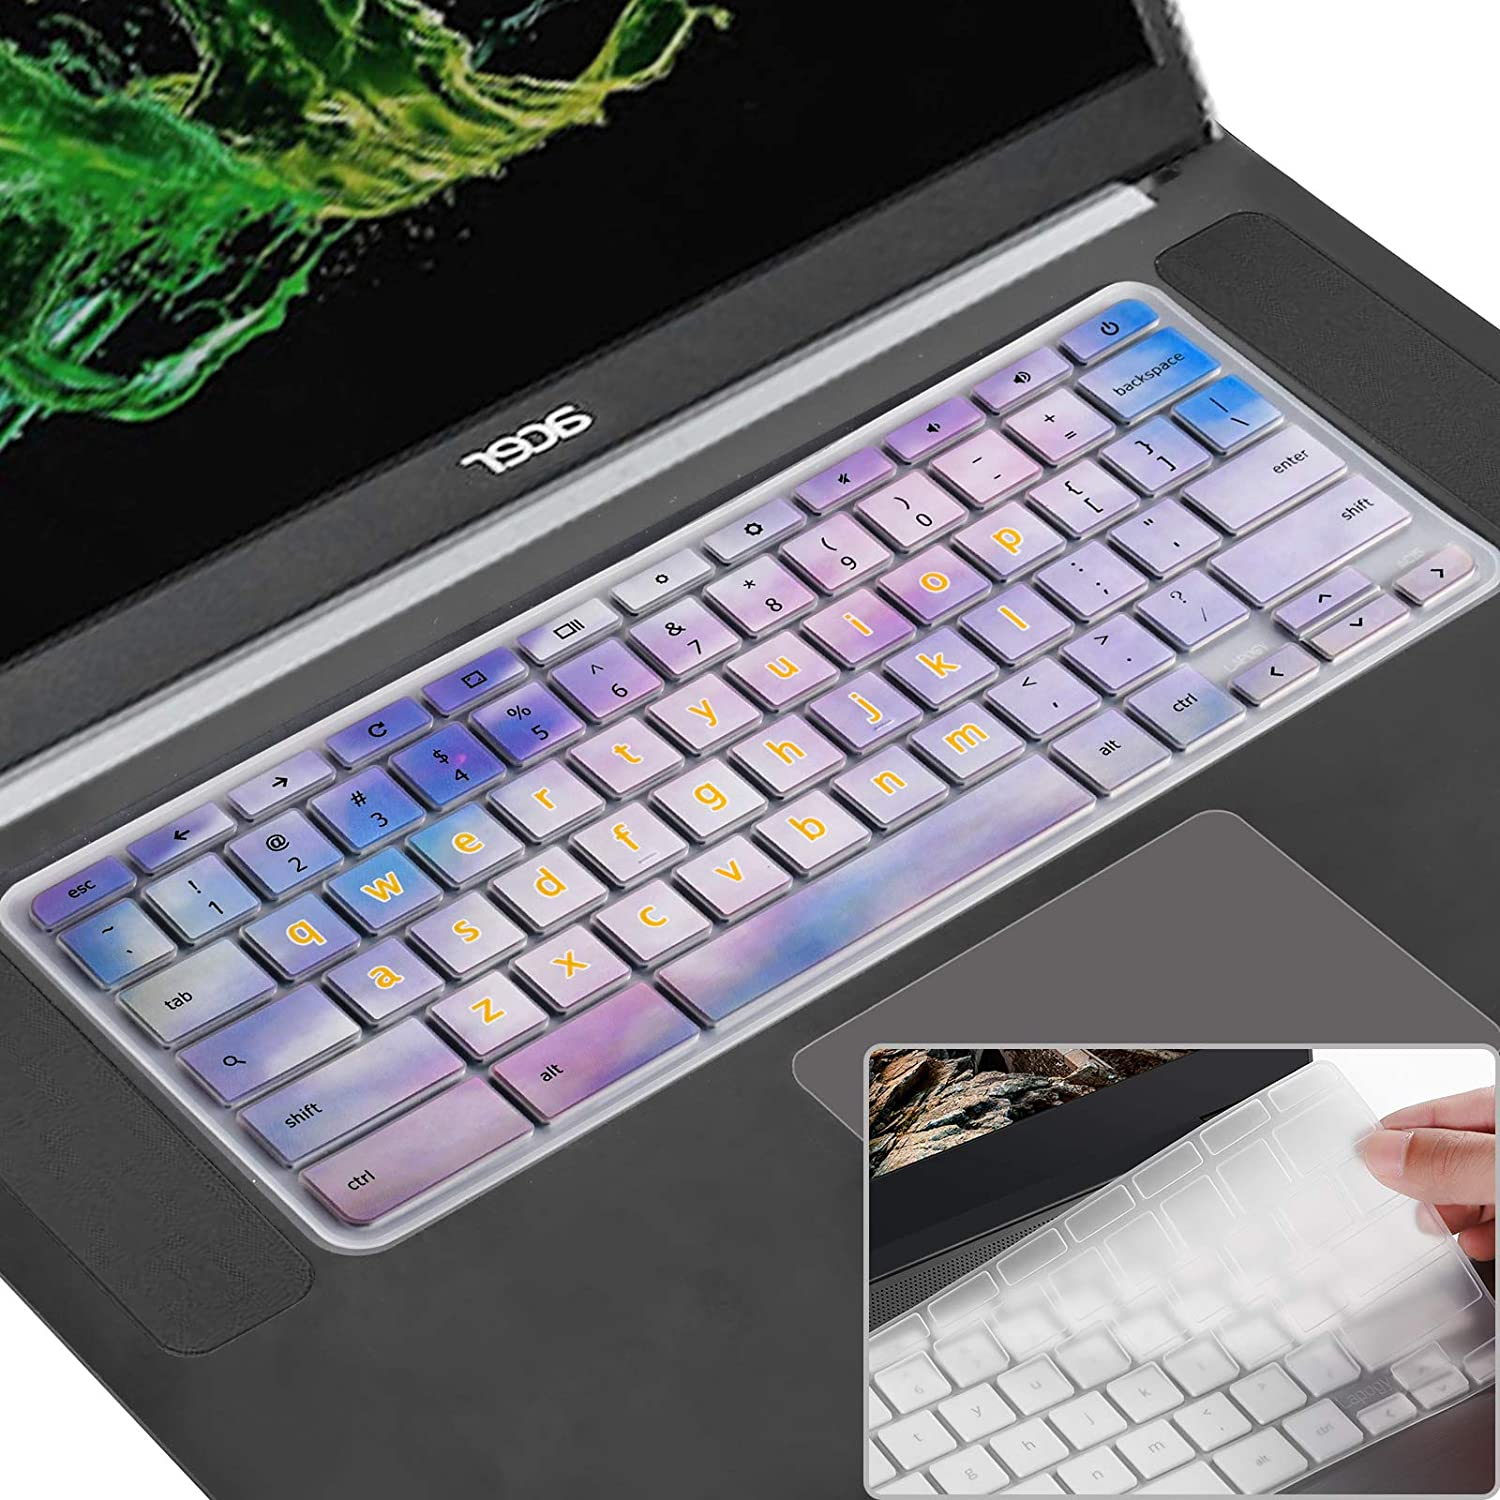 [2 Pack] Keyboard Cover Skin Compatible Acer chromebook R11 11.6 inch CB3-131 CB3-132,CB5-132T,CB3-131,Chromebook R 13, CB5-312T,Chromebook 15,CB3-531 CB5-571 C910,Colorful Ink+Clear